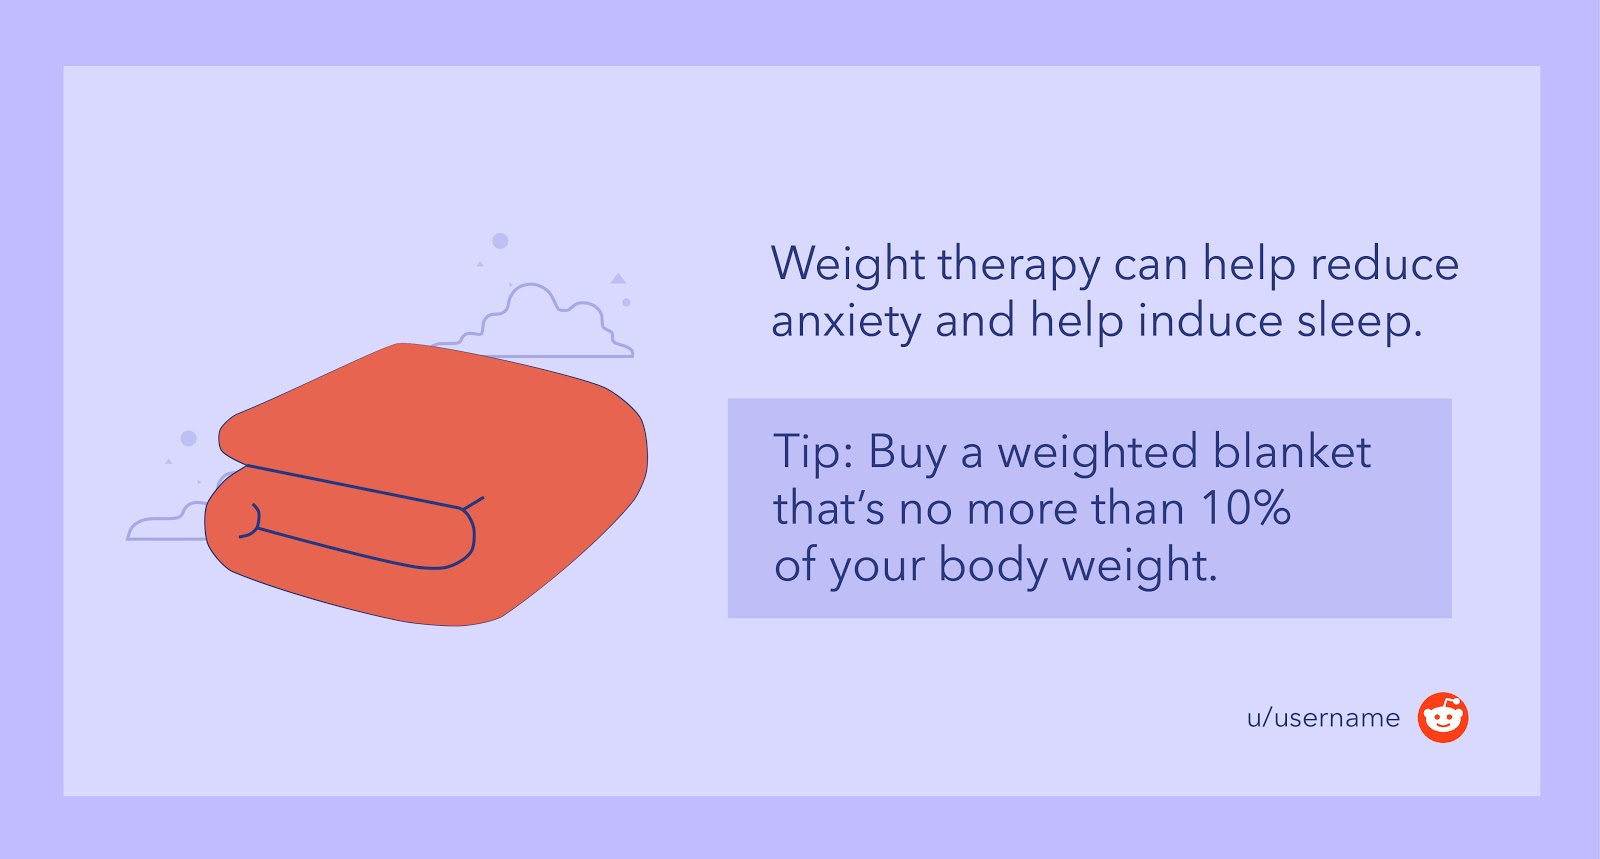 Buy a weighted blanket that's no more than 10% of your body weight.